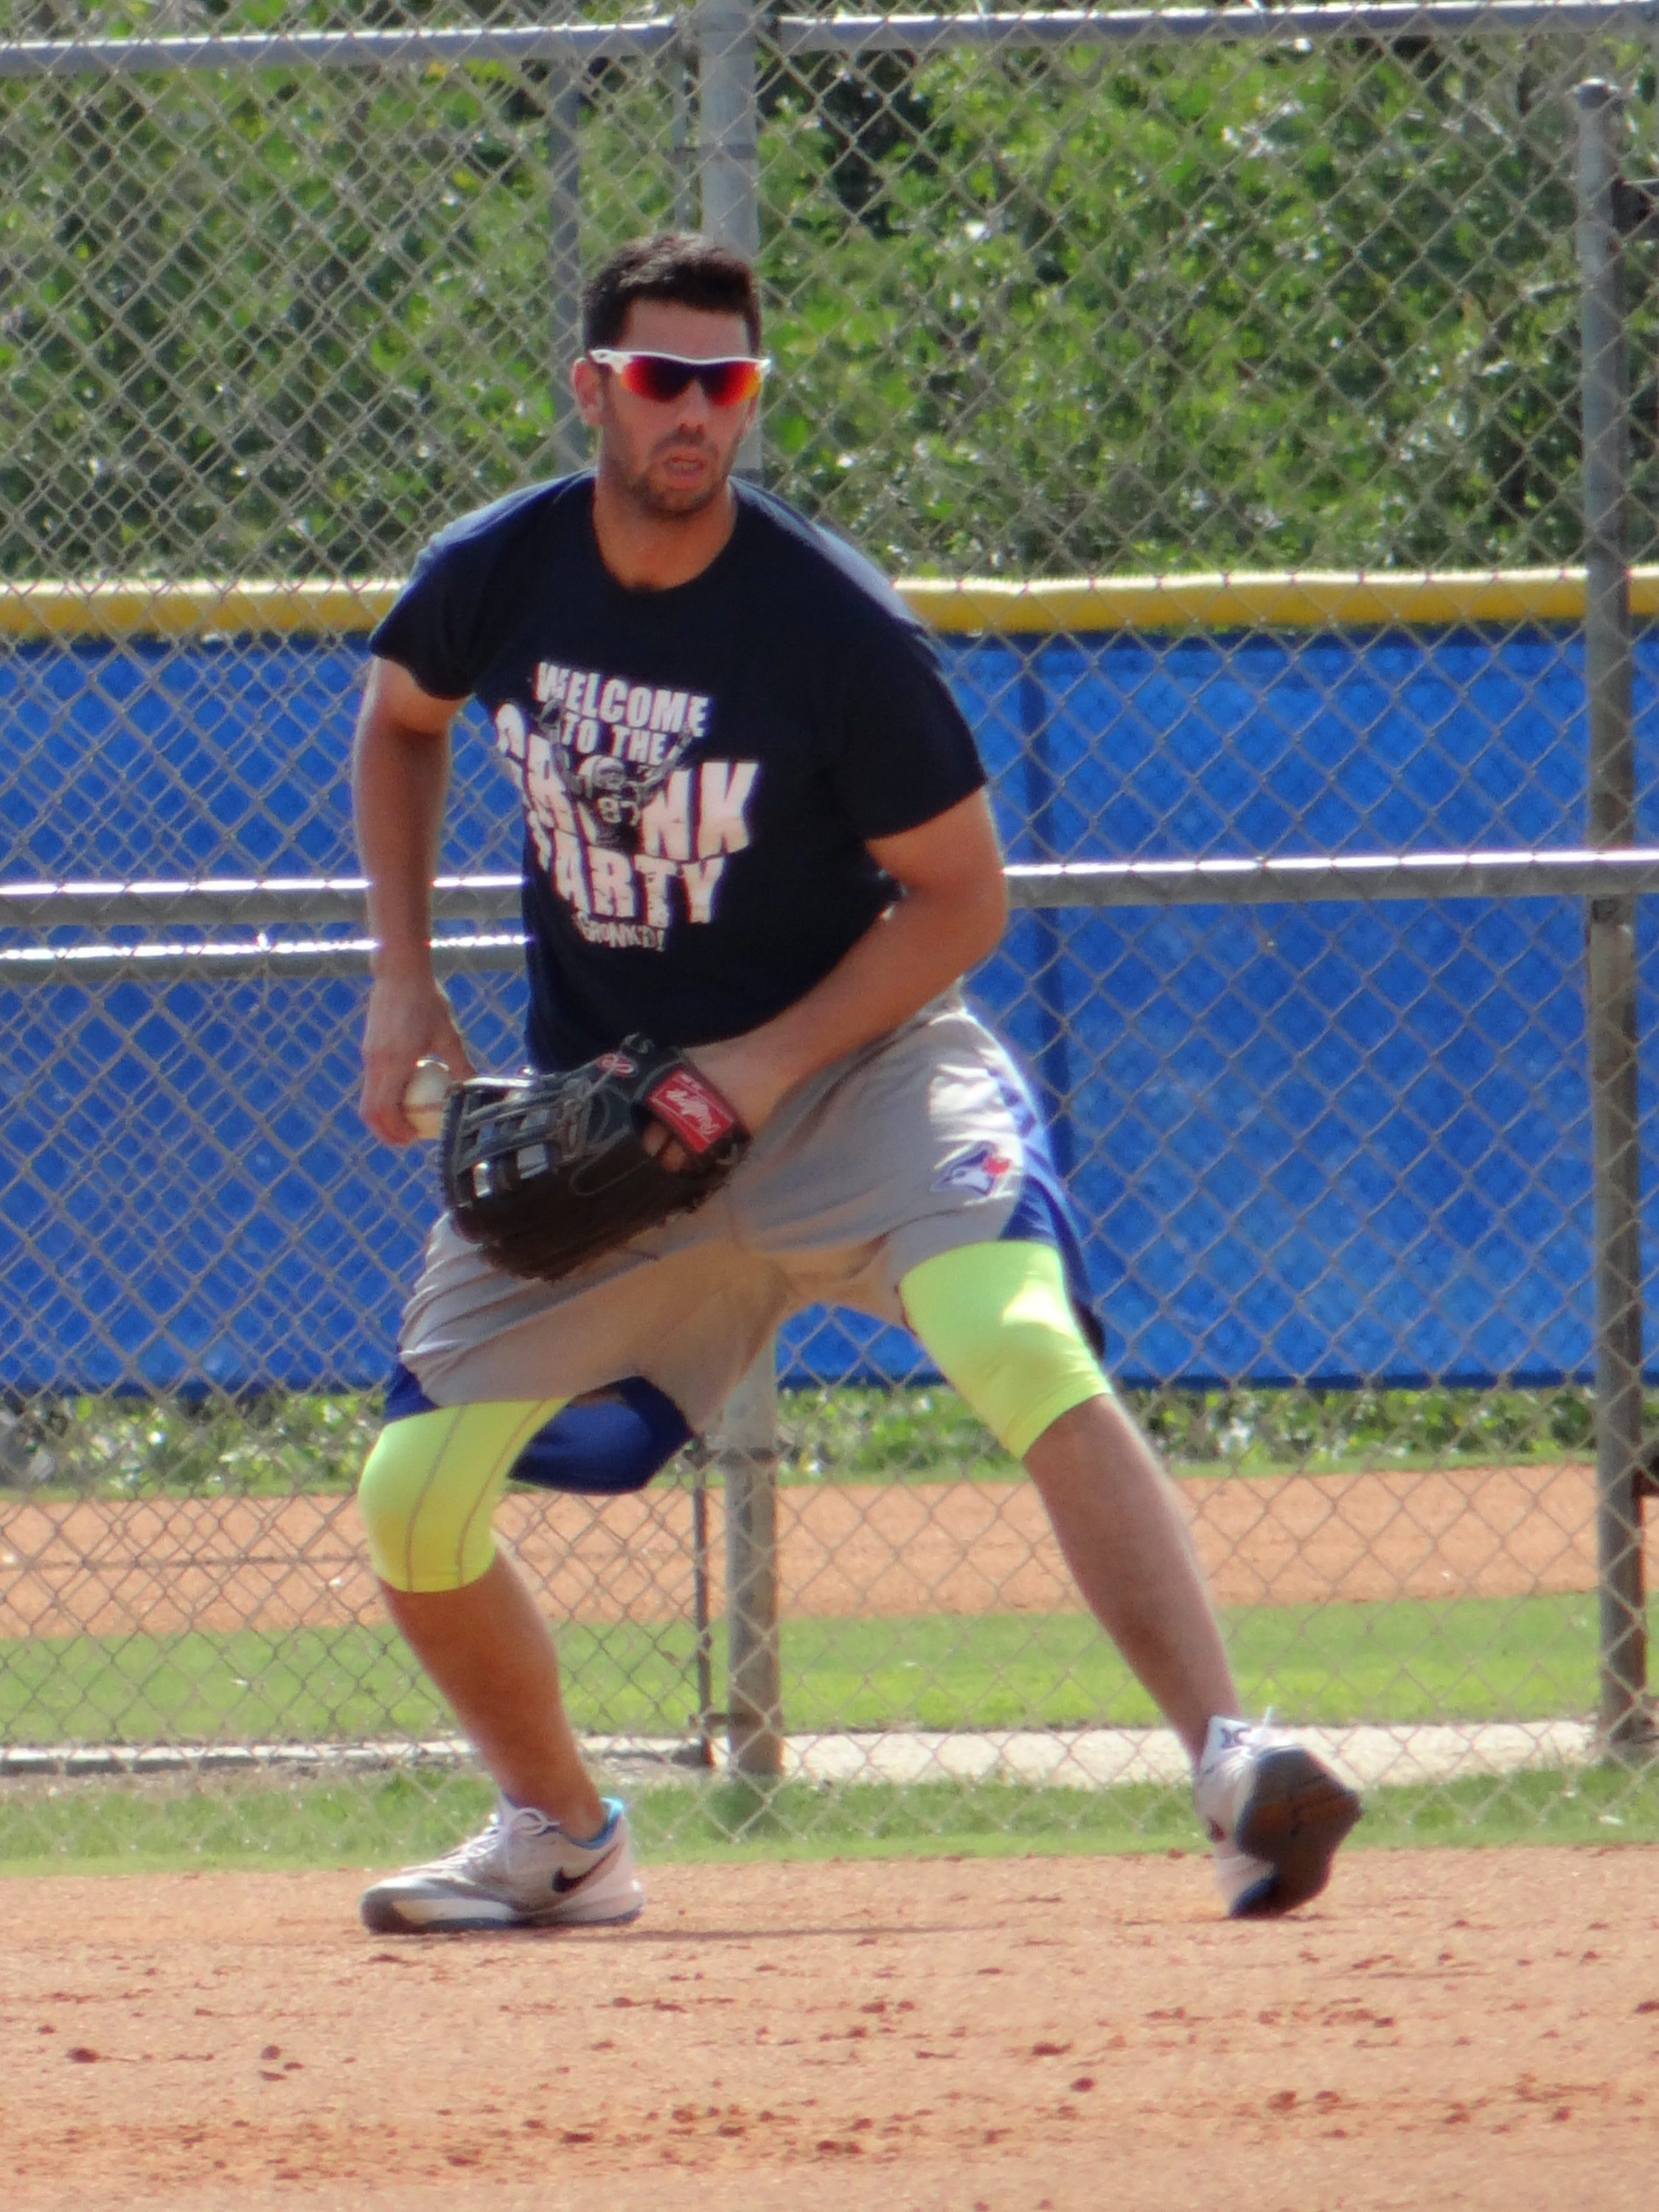 Chris Colabello Works Out at First  (EDDIE MICHELS PHOTO)